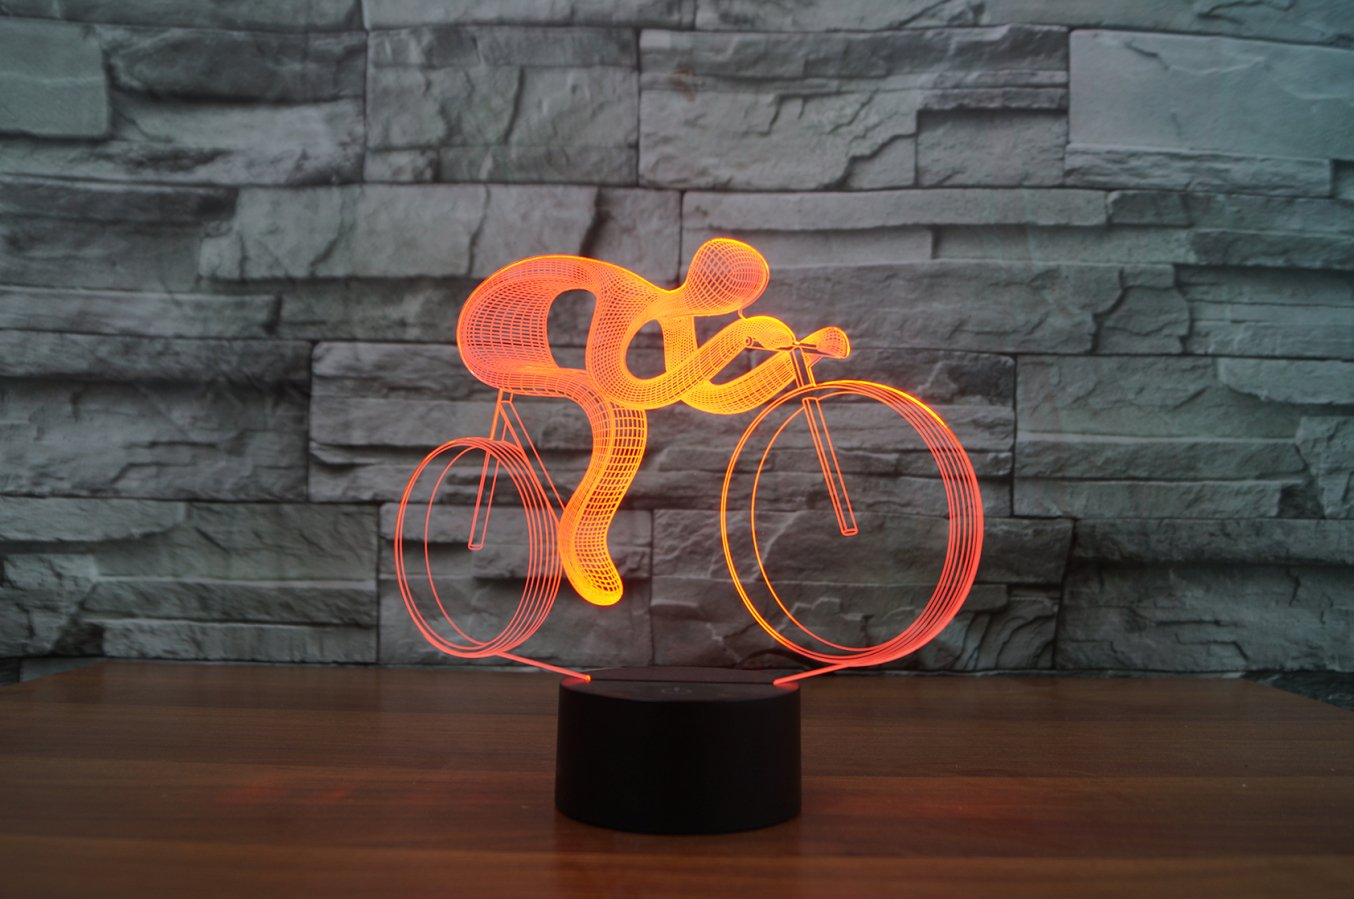 3D Optical Illusion LED Desk Lamp, 7 Color Changing with USB Cable Touch Button Night Light - Best Gift for Kids/Friends/Birthdays/Home Bedroom Decor Lighting (Bike)